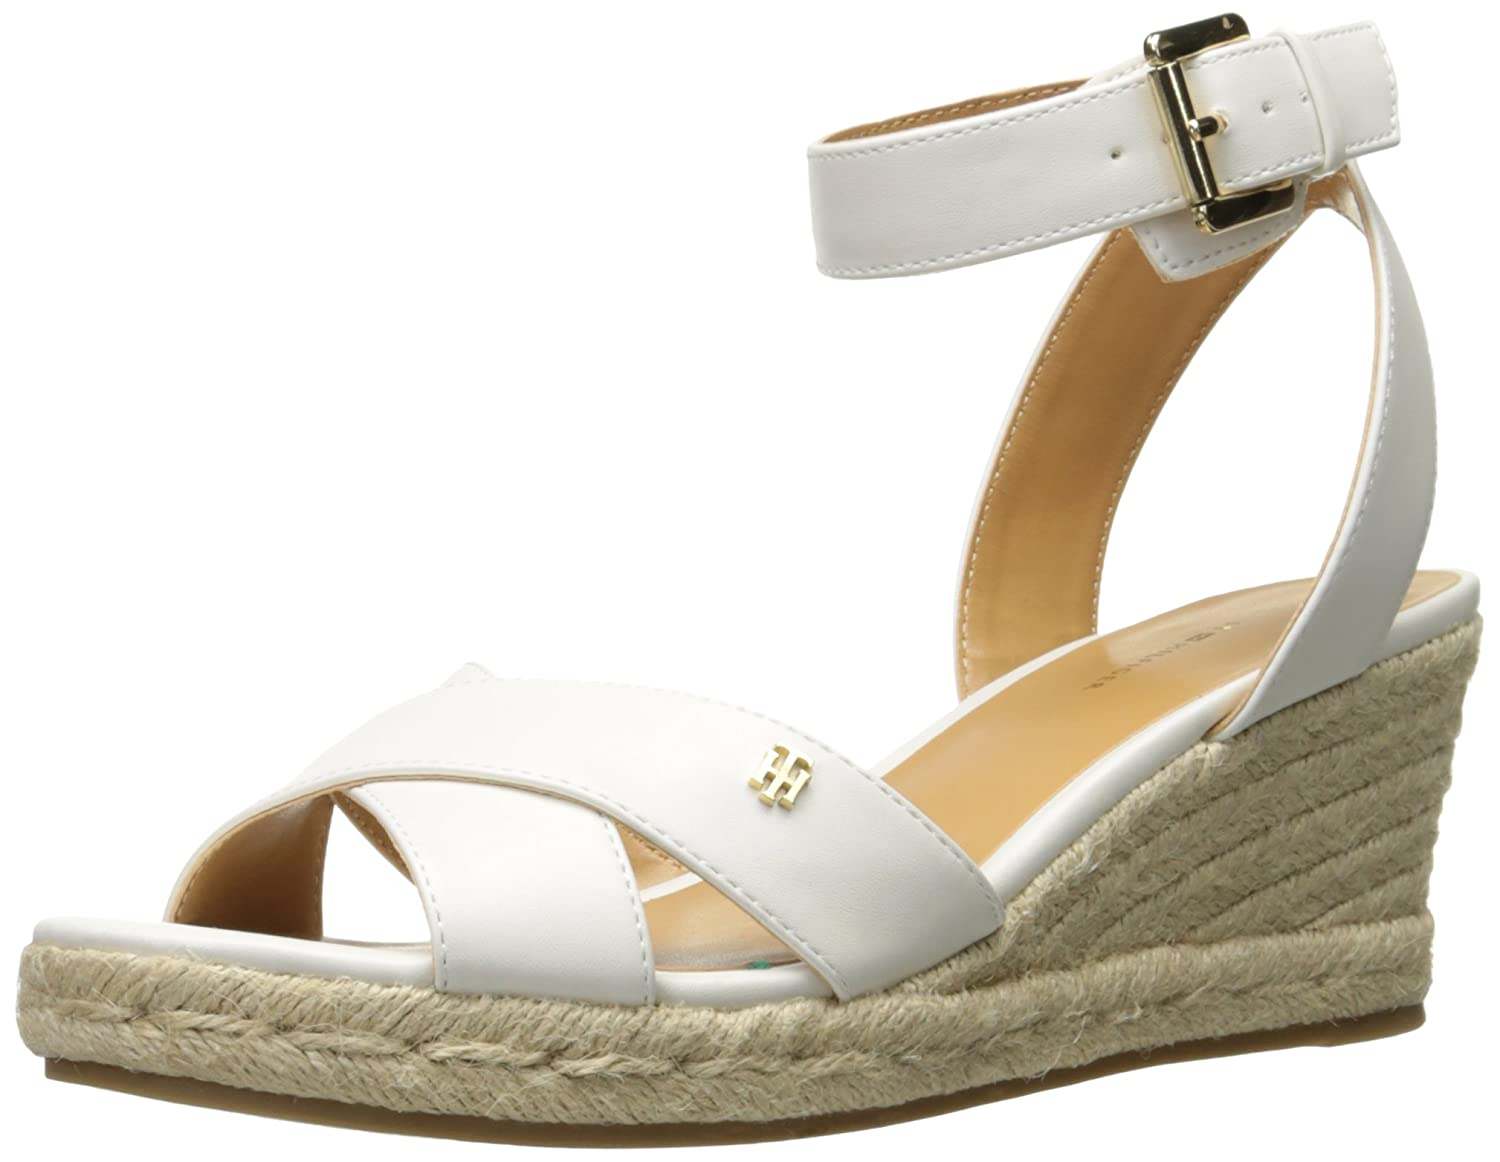 Tommy Hilfiger Women's Gorgis Wedge Sandal B01M8KZ9R3 11 B(M) US|White